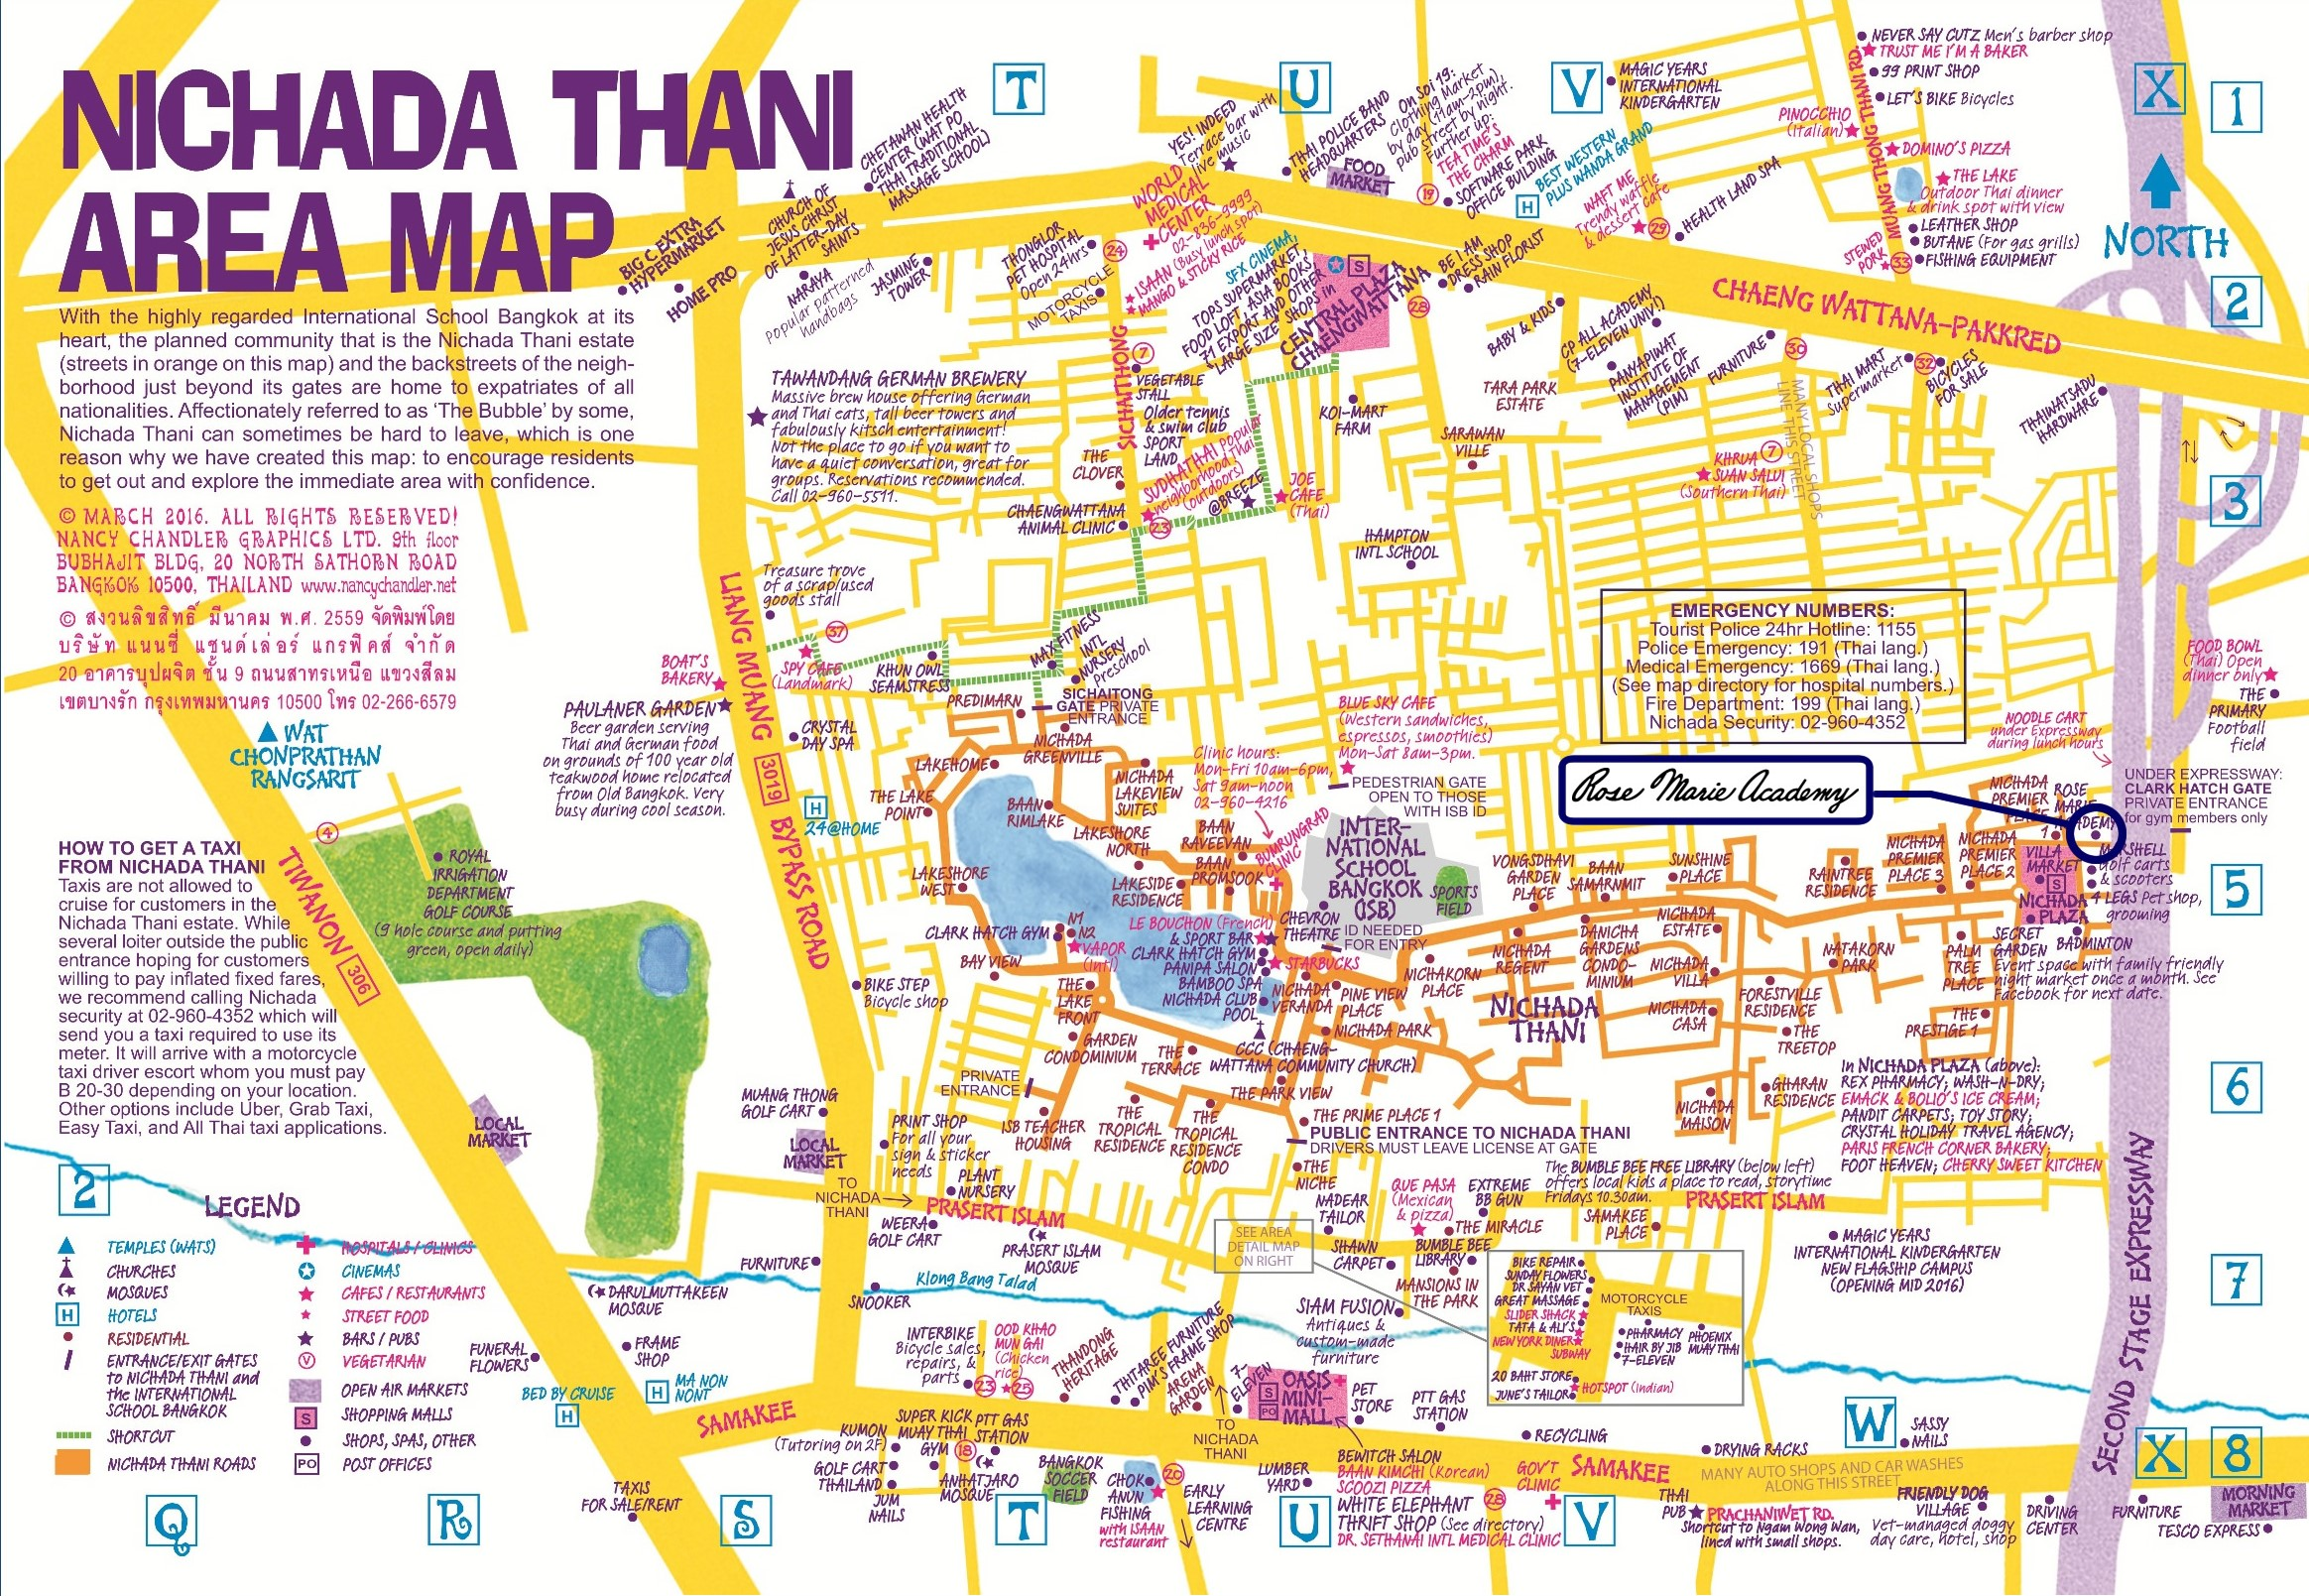 RMA-Nichada-Thani-Area-Map